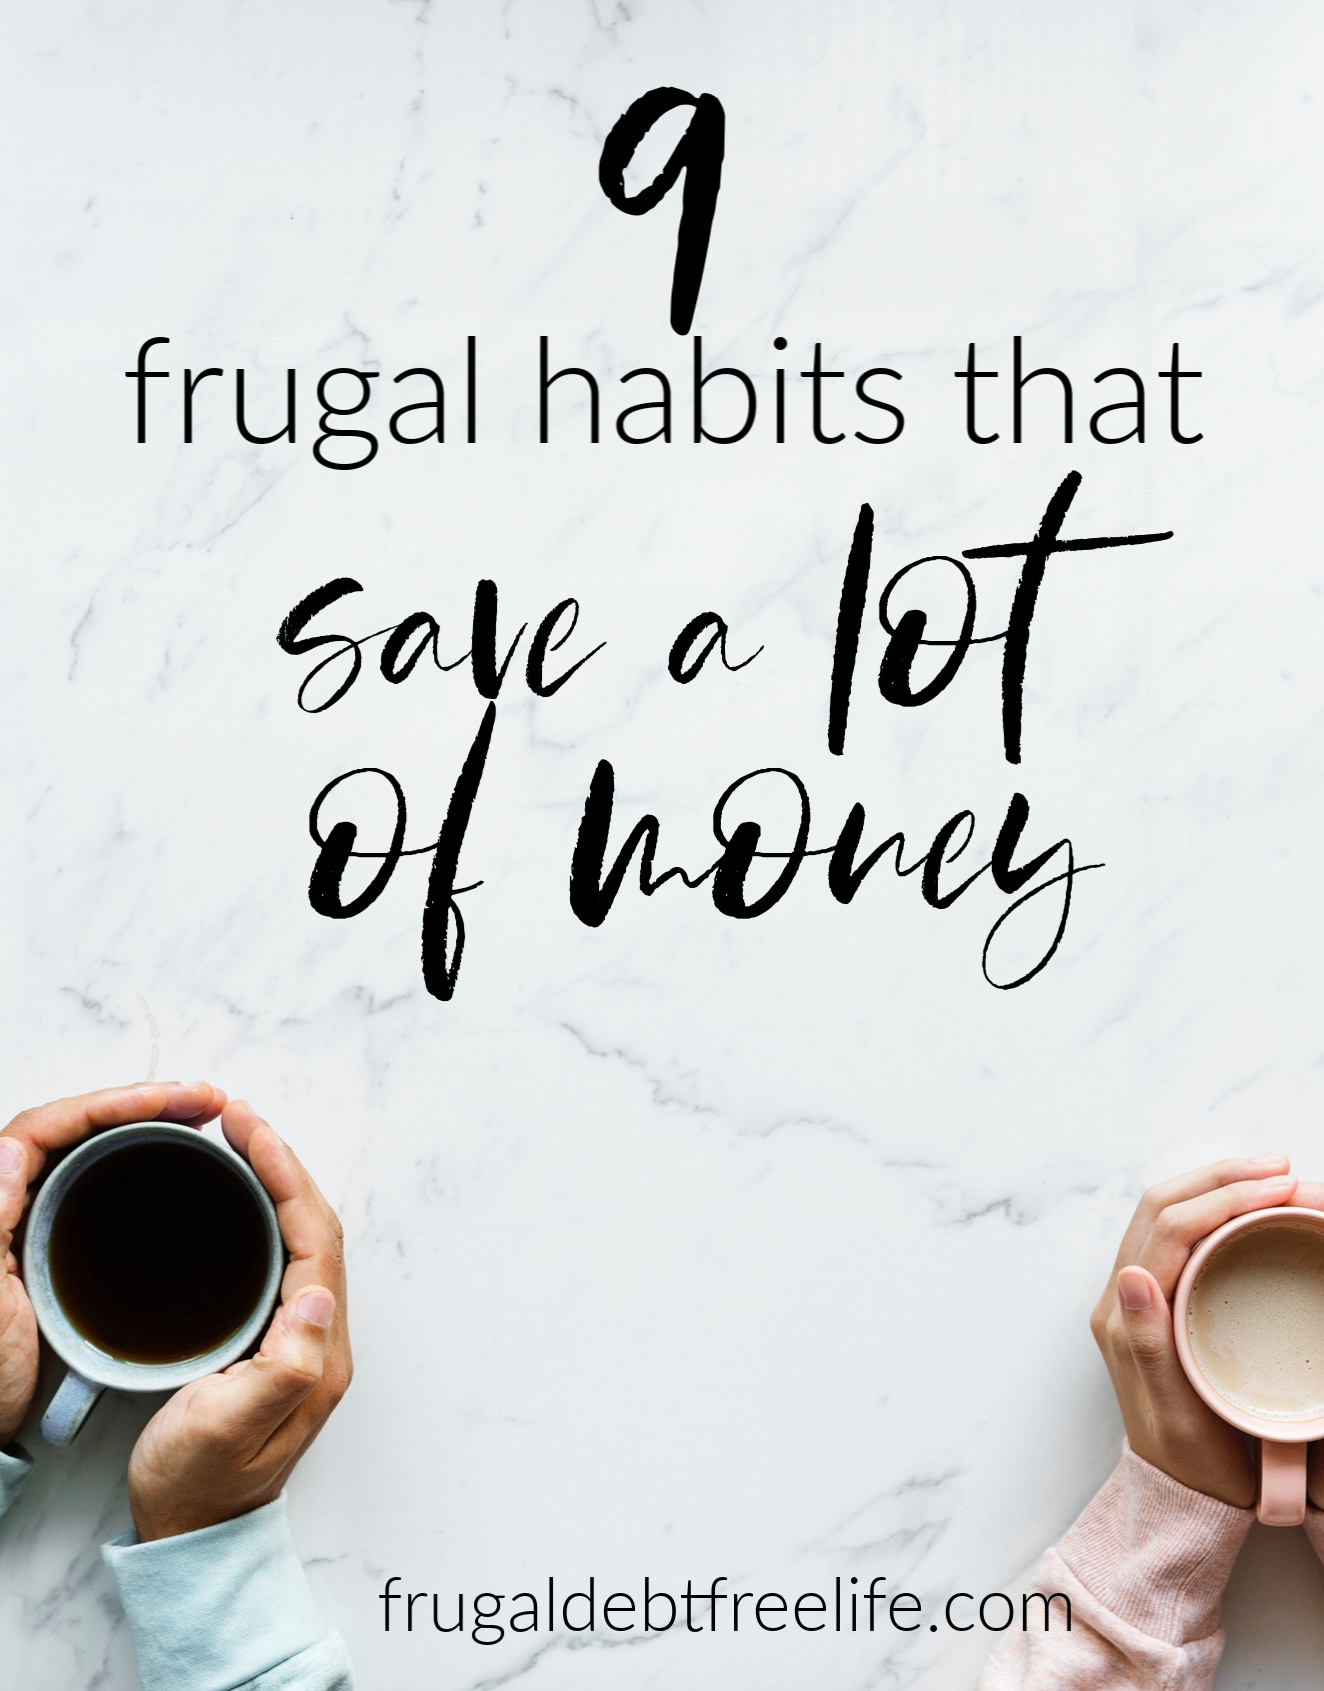 9 frugal habits that save a lot of money.jpg